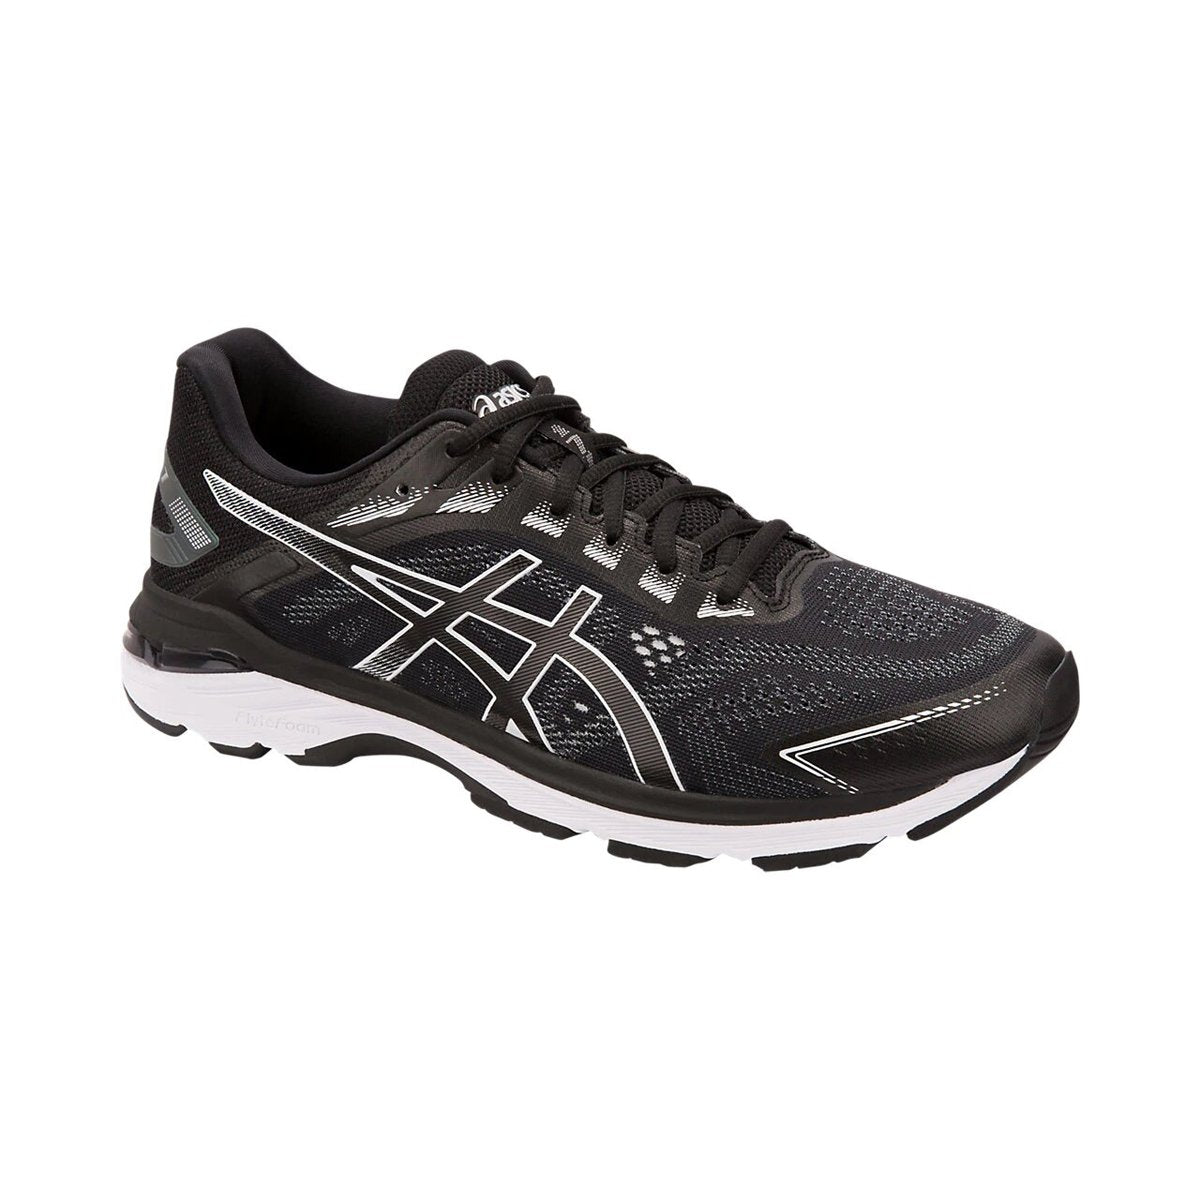 Buy Asics Men GT 2000 7 Running Shoes Online in Singapore | Royal Sporting House